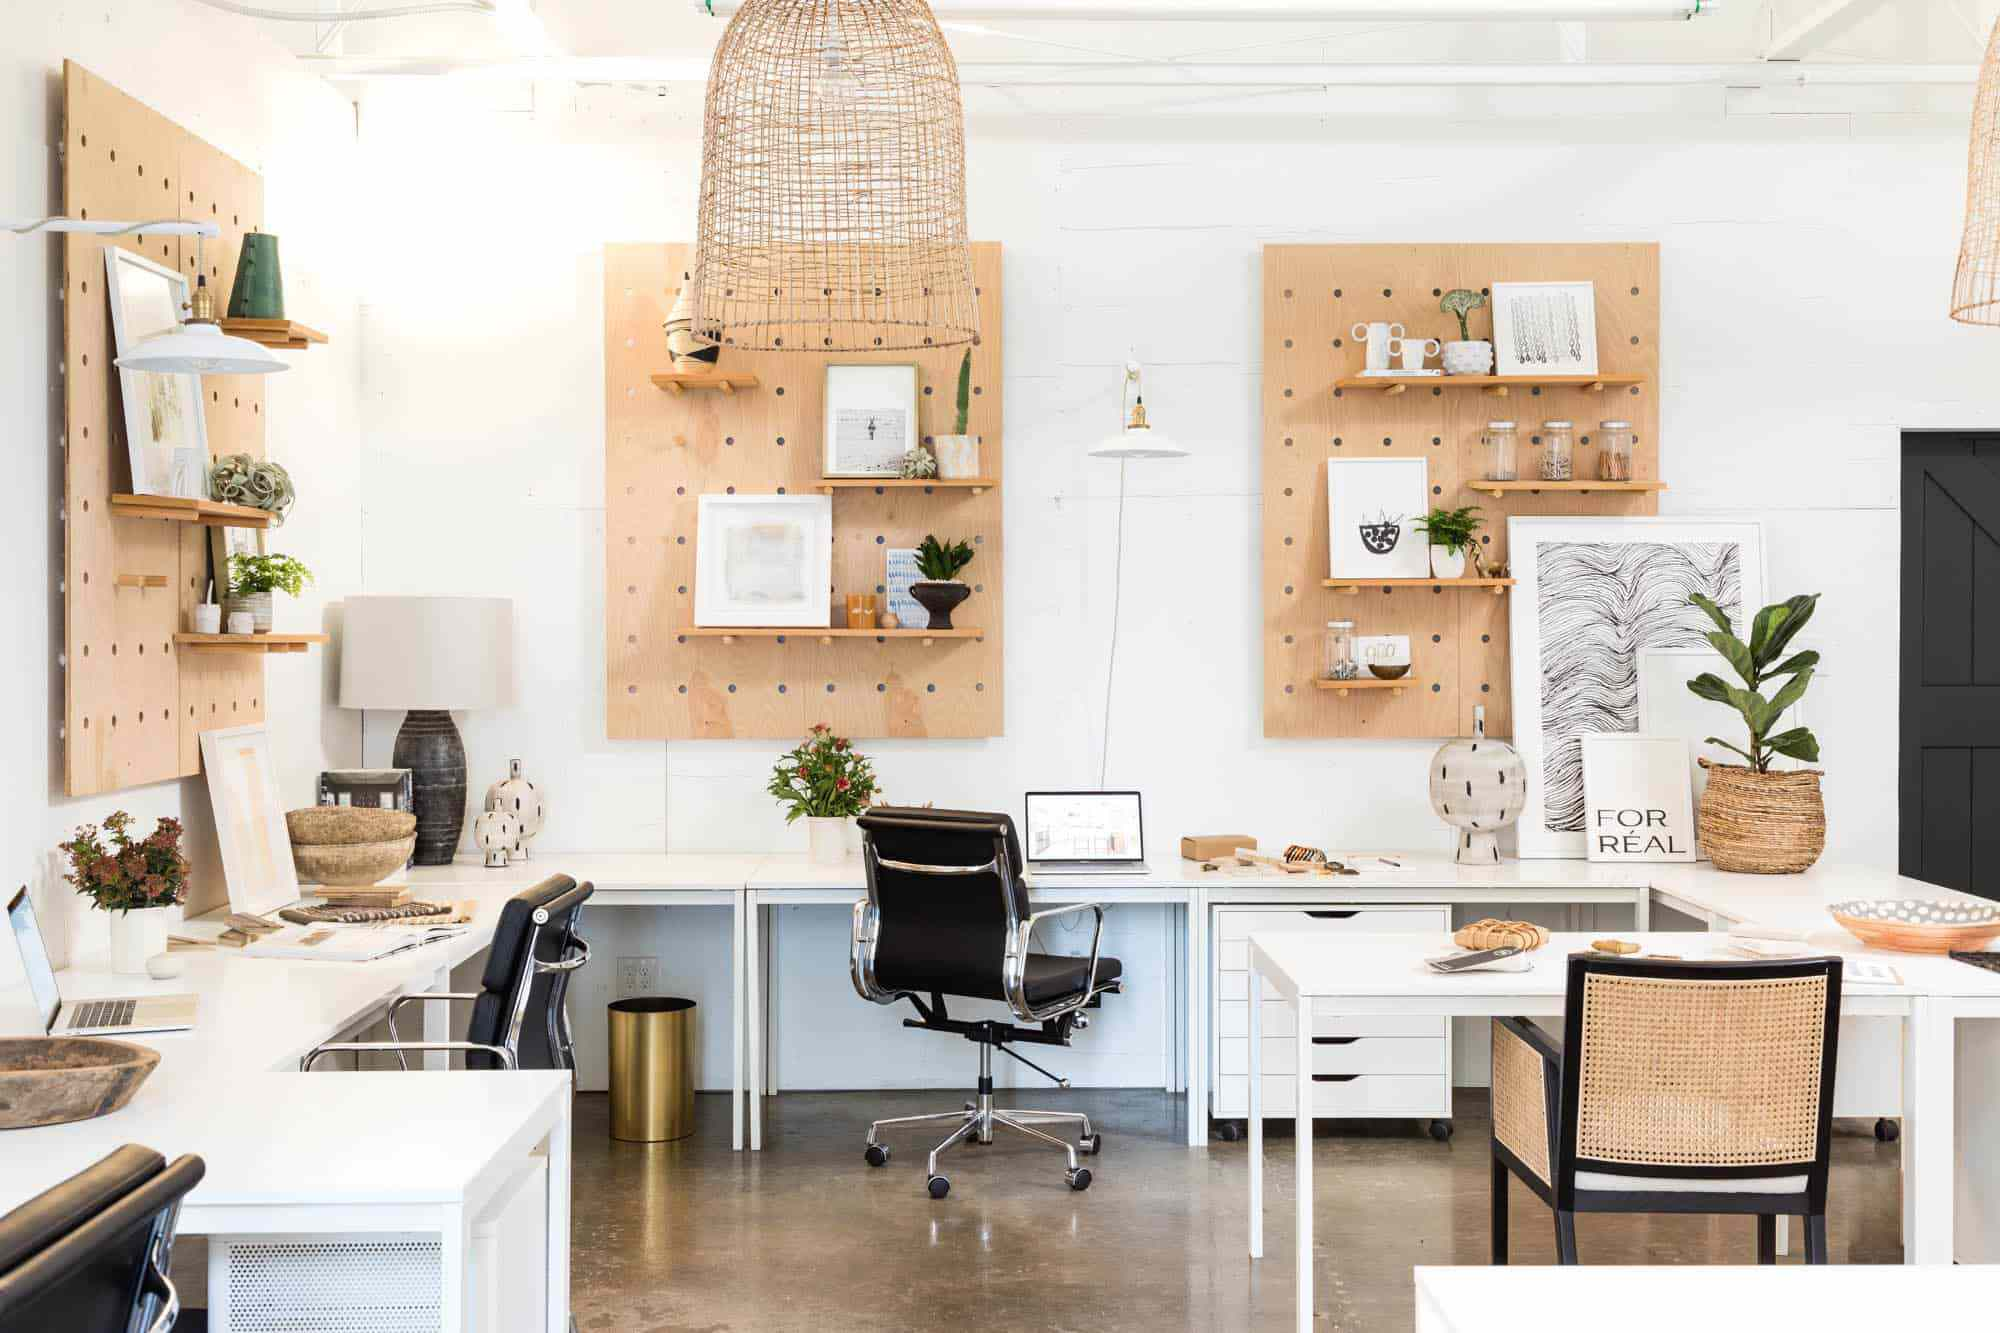 A large workspace with pegboard-lined walls and several under-desk cabinets